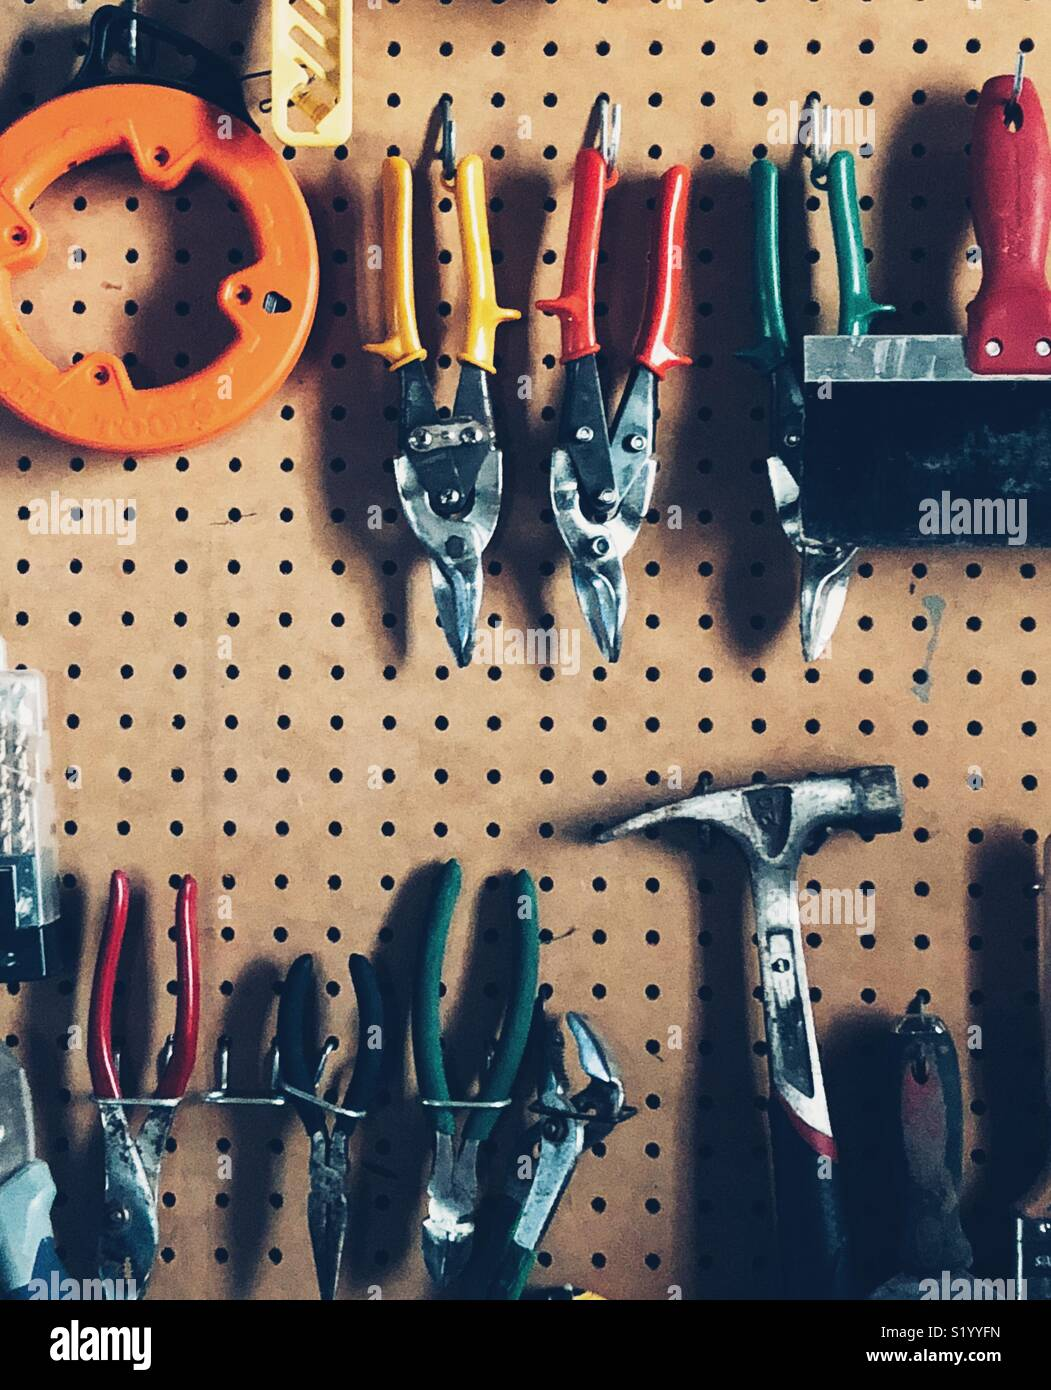 Pegboard full of random tools in a garage - Stock Image